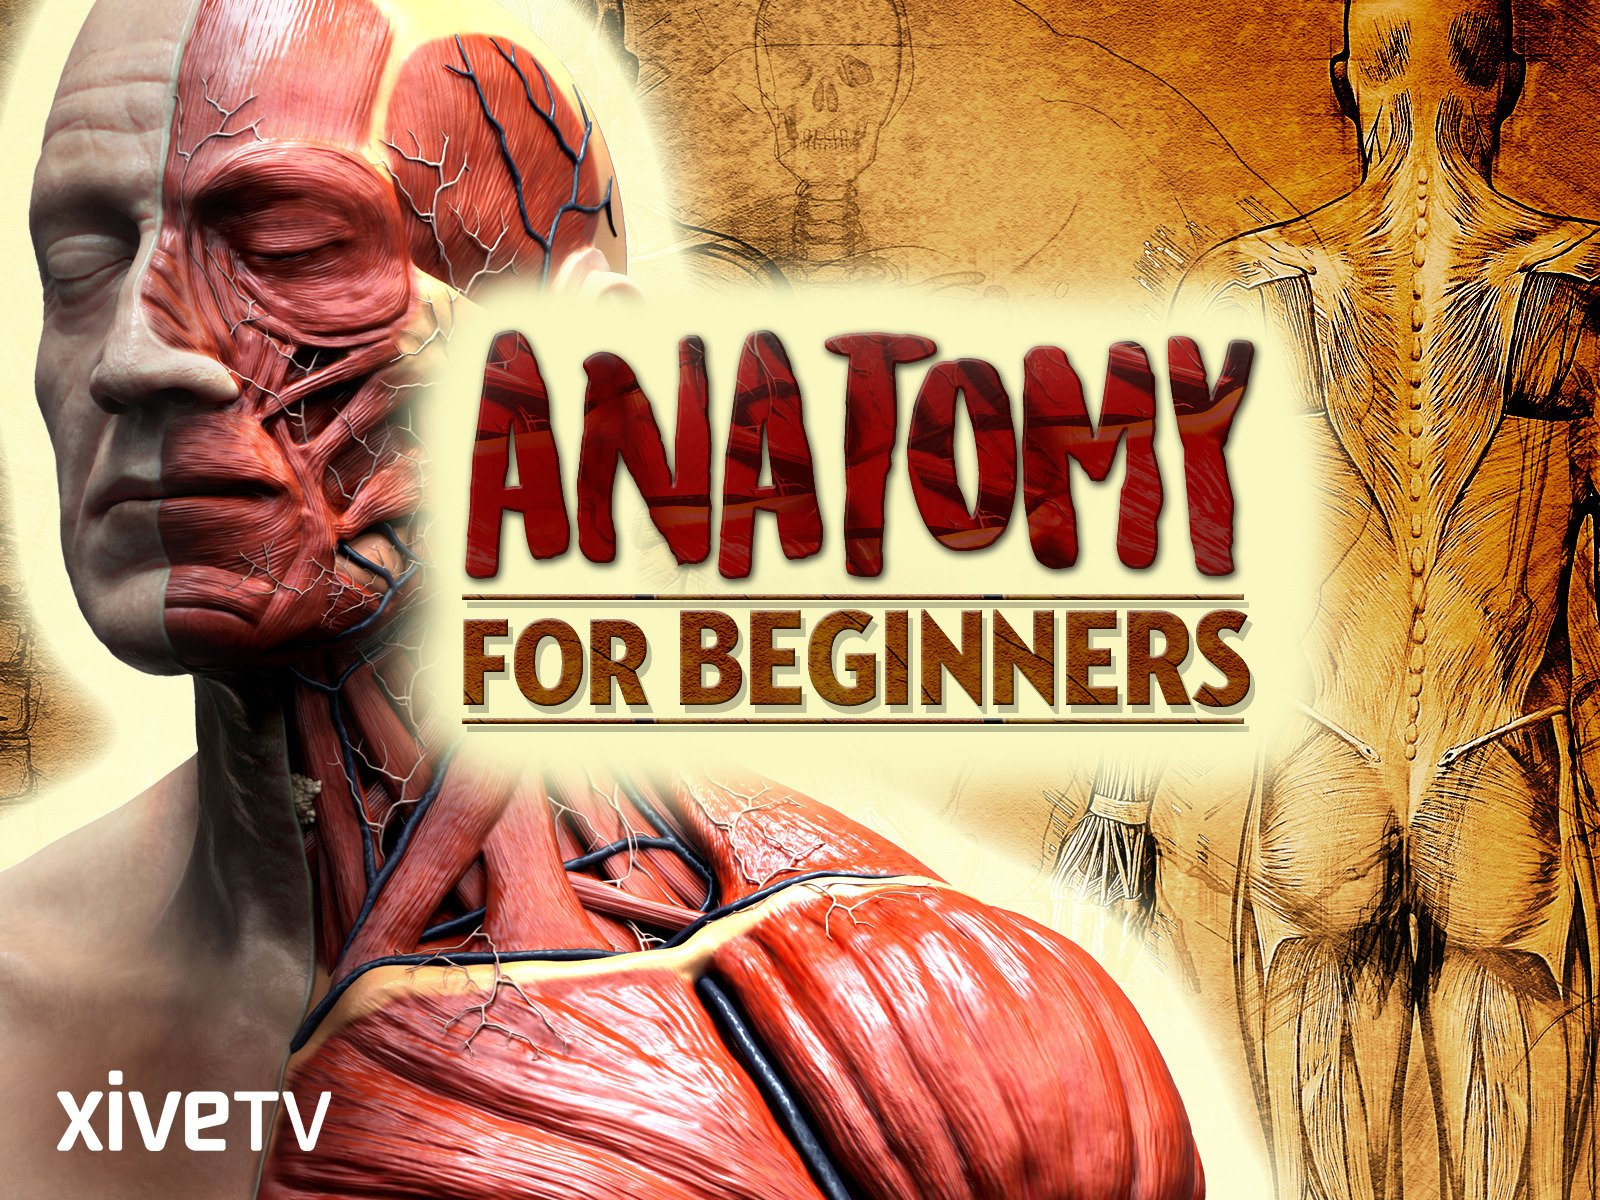 Amazon.com: Anatomy for Beginners: Season 1: David Coleman, Dr ...